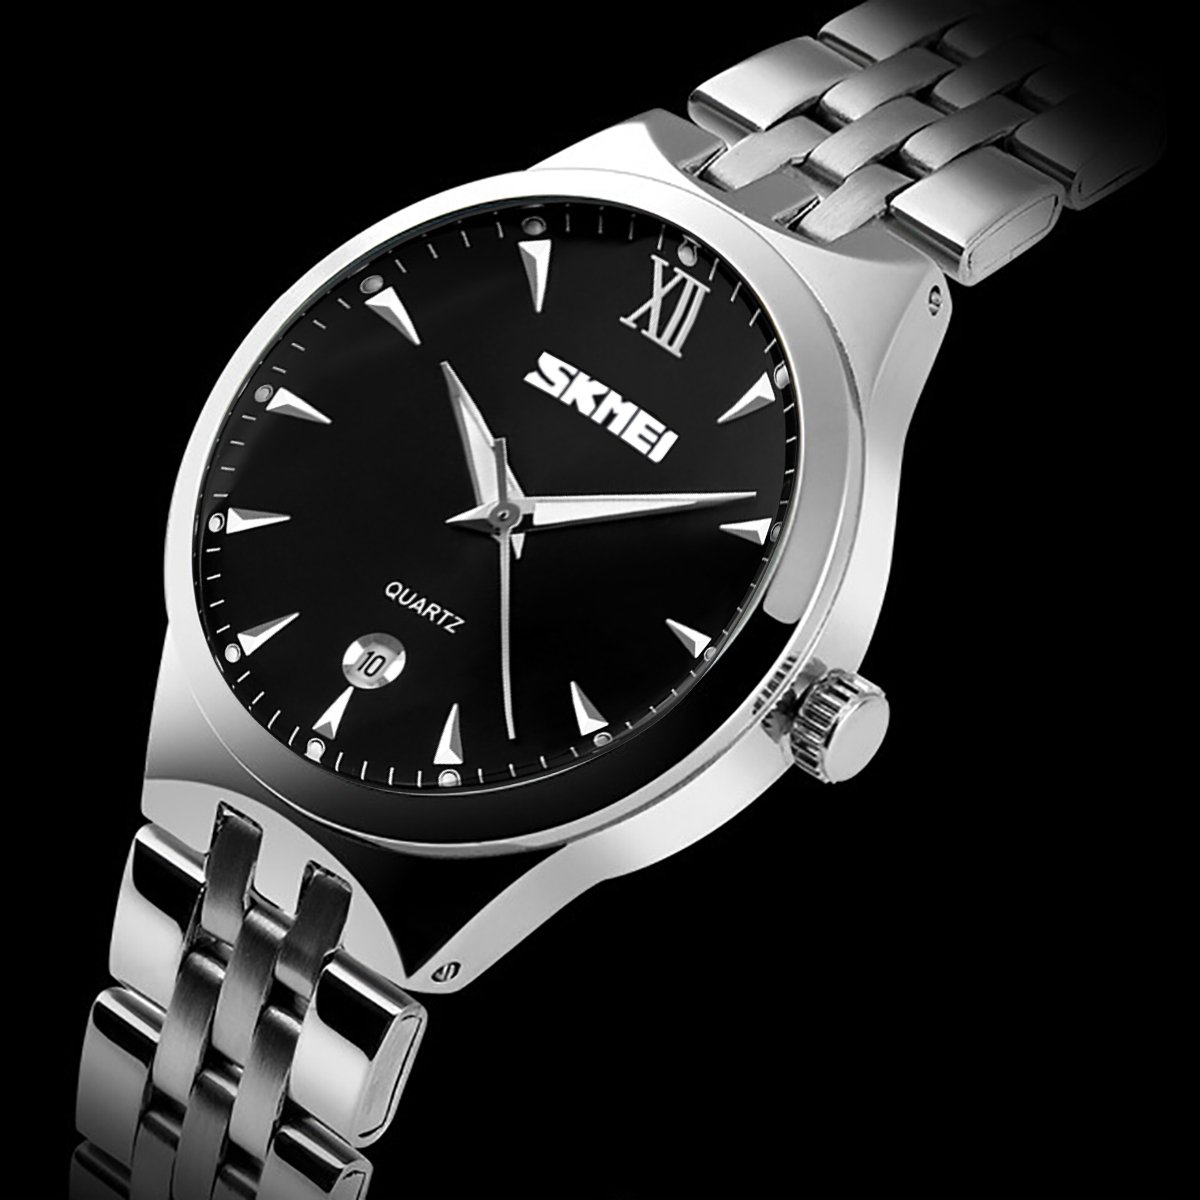 MODIWEN Men\'s Quartz Watch Analog Business Wrist Watch with Date and Stainless Steel Strap